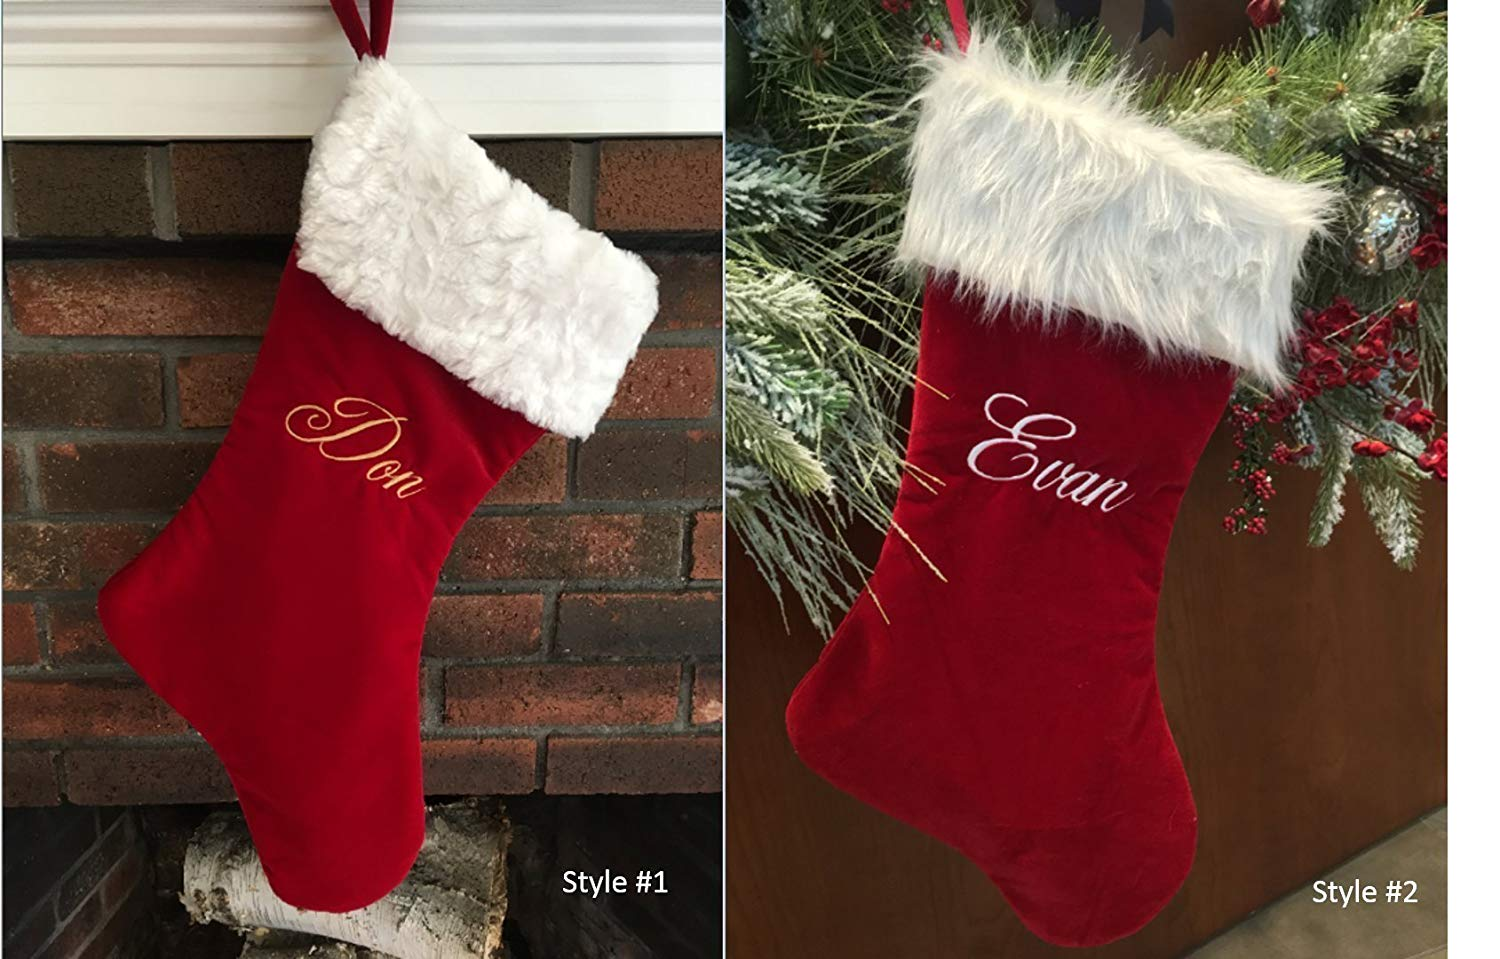 Buy Personalized Velvet Diamond Christmas Stockings Available in ...